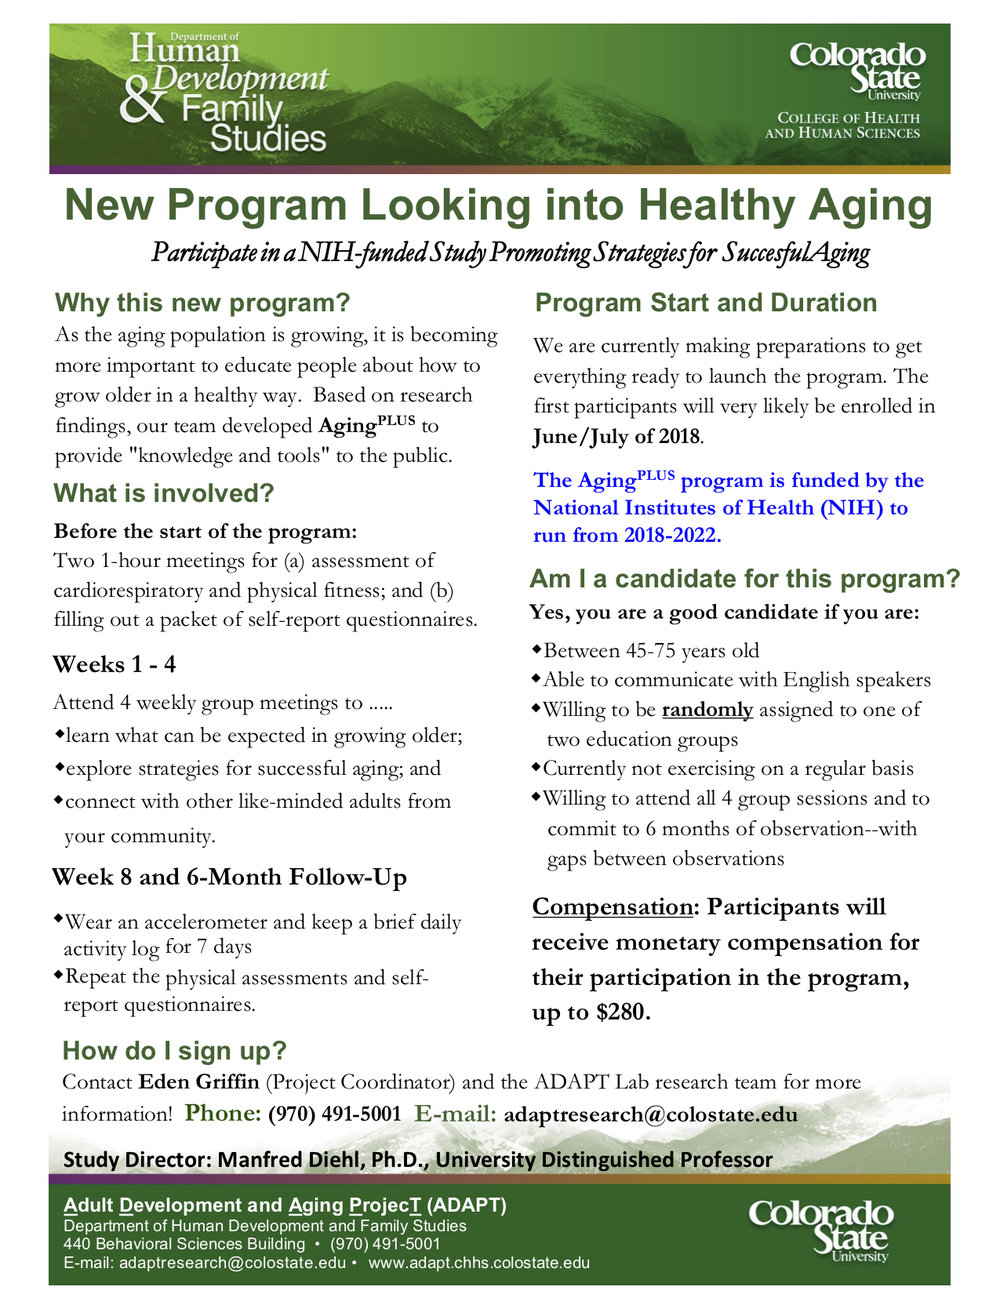 General AgingPLUS Flyer R01_FINAL_05-17-18.jpg